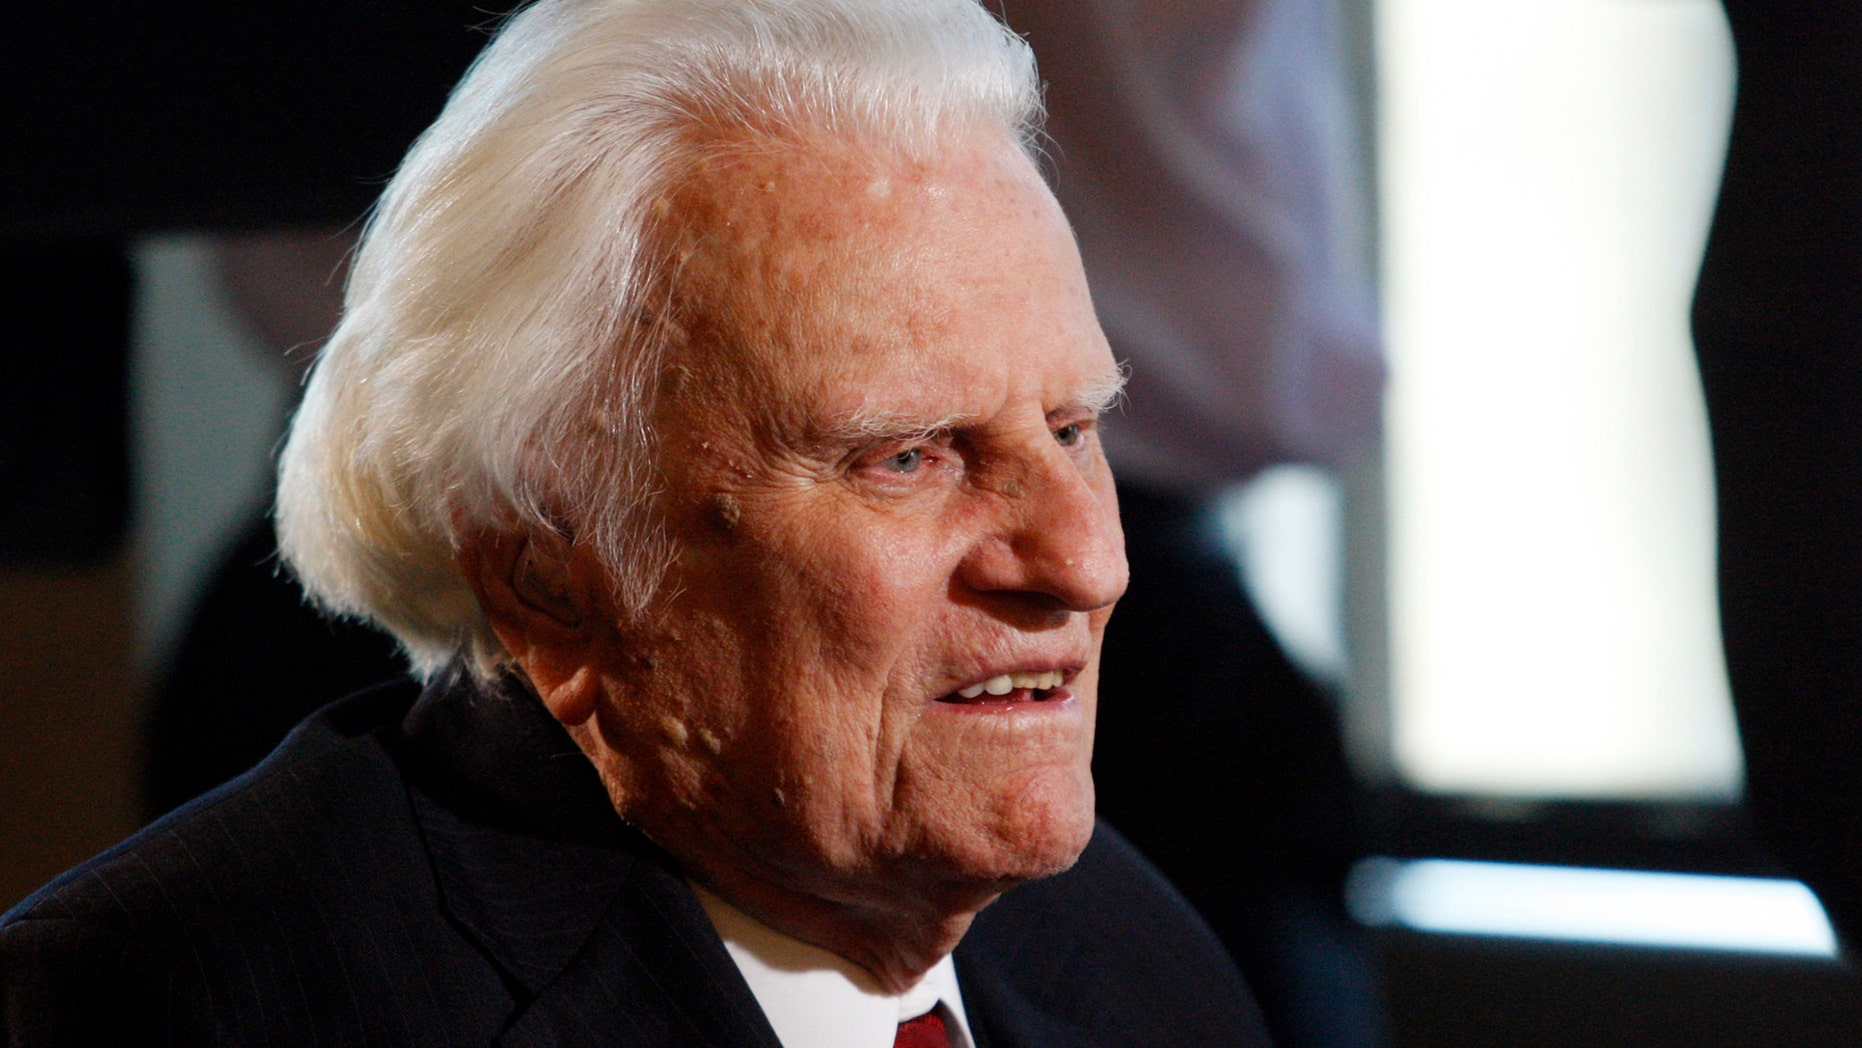 FILE - In this Dec. 20, 2010 file photo, evangelist Billy Graham, 92, speaks during an interview at the Billy Graham Evangelistic Association headquarters in Charlotte, N.C.    Graham, who transformed American religious life through his preaching and activism, becoming a counselor to presidents and the most widely heard Christian evangelist in history, has died. Spokesman Mark DeMoss says Graham, who long suffered from cancer, pneumonia and other ailments, died at his home in North Carolina on Wednesday, Feb. 21, 2018. He was 99. (AP Photo/Nell Redmond, File)